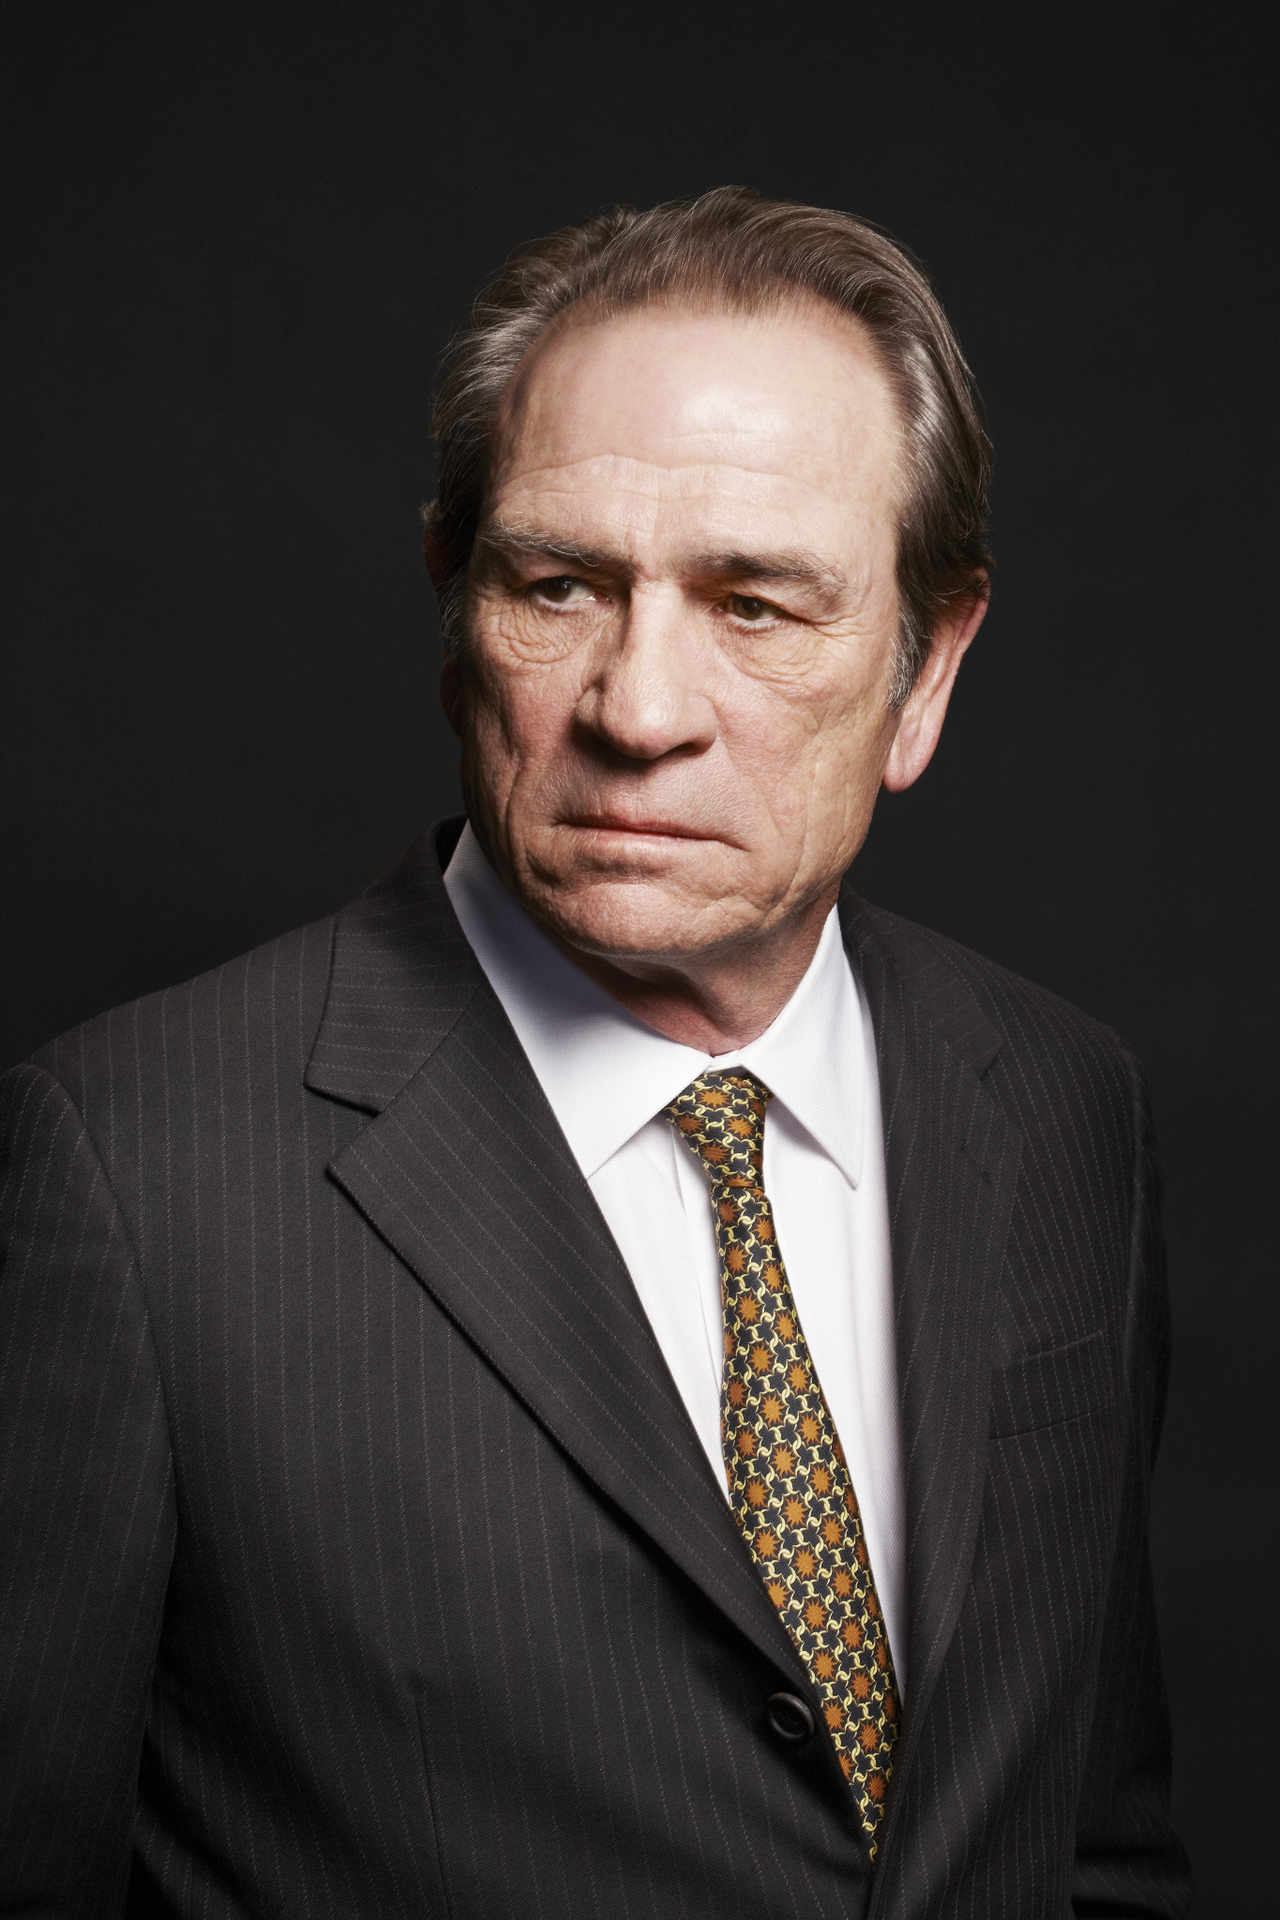 Wallpapers Of The Day: Tommy Lee Jones | 1113x788px Tommy Lee Jones ...